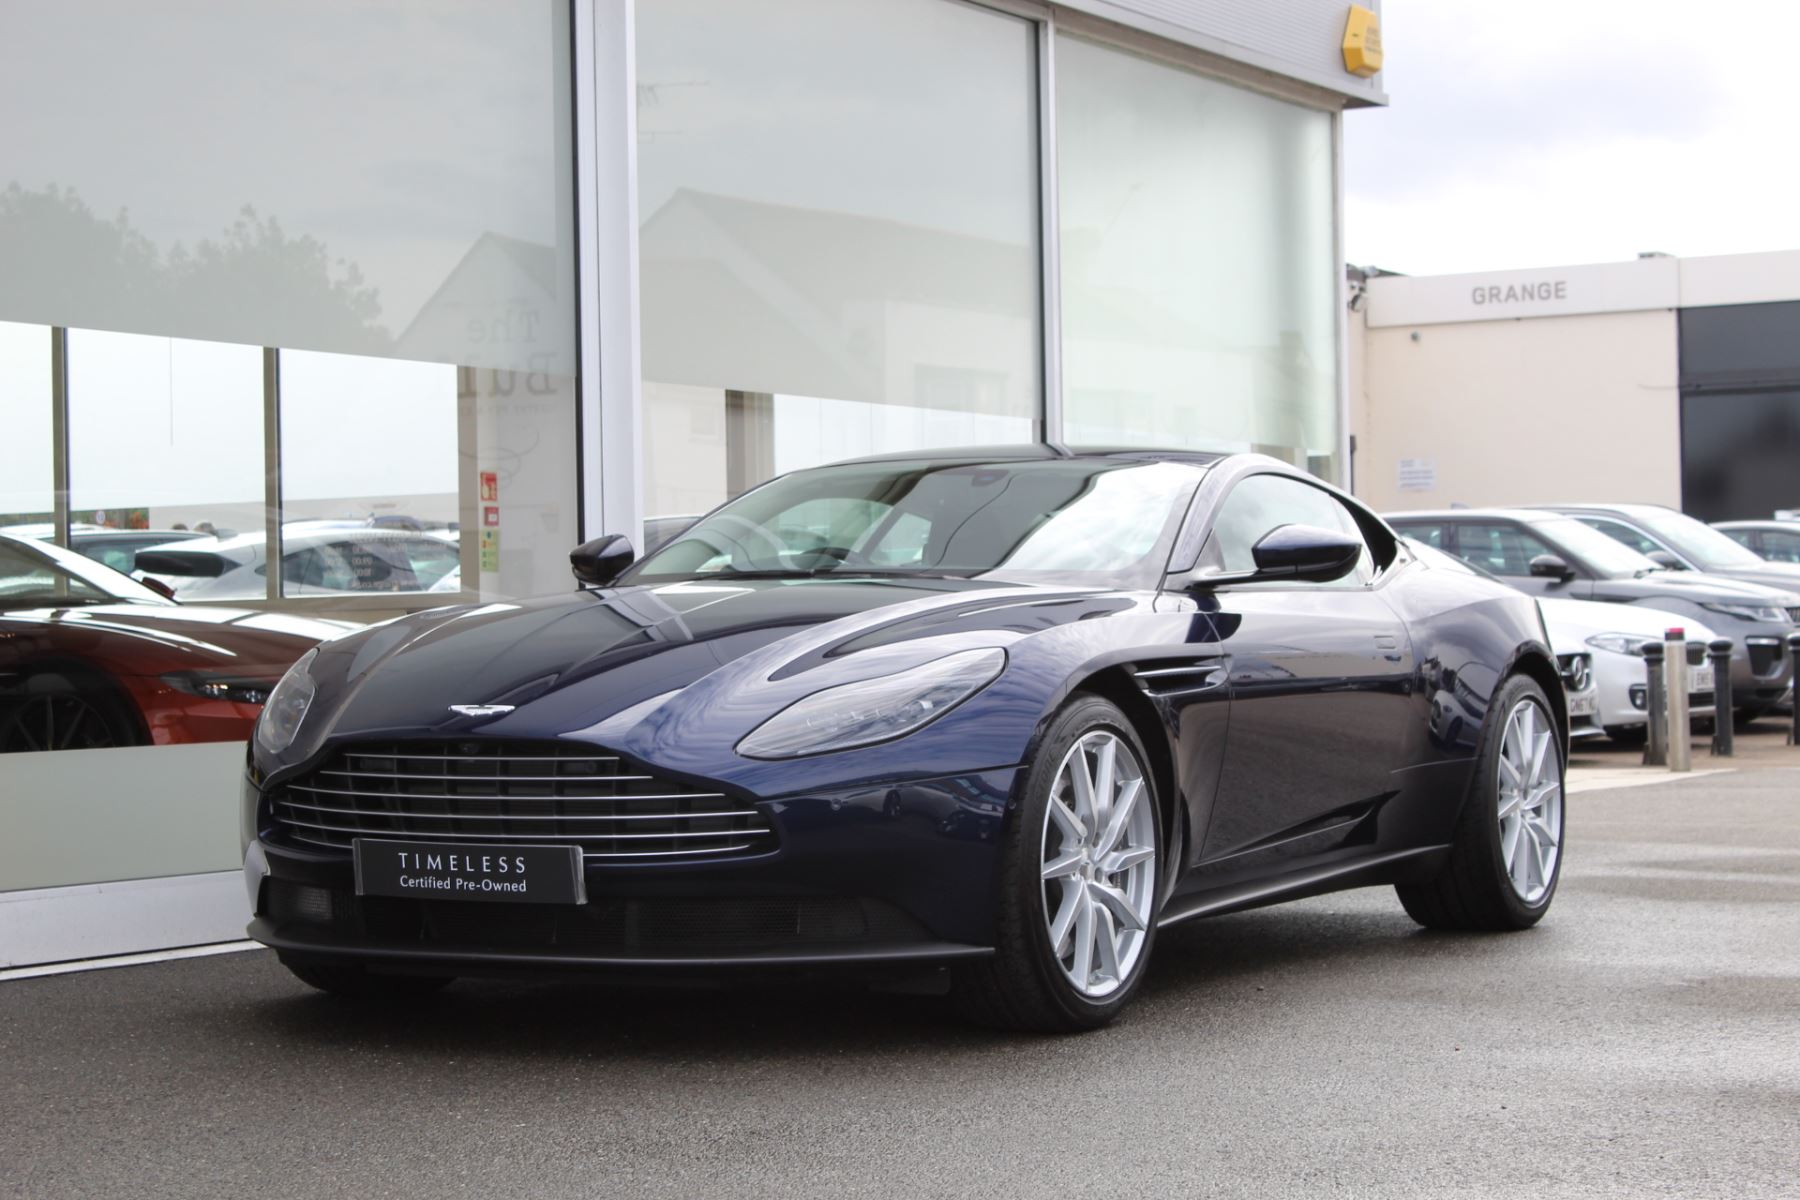 Aston Martin DB11 V8 2dr Touchtronic image 8